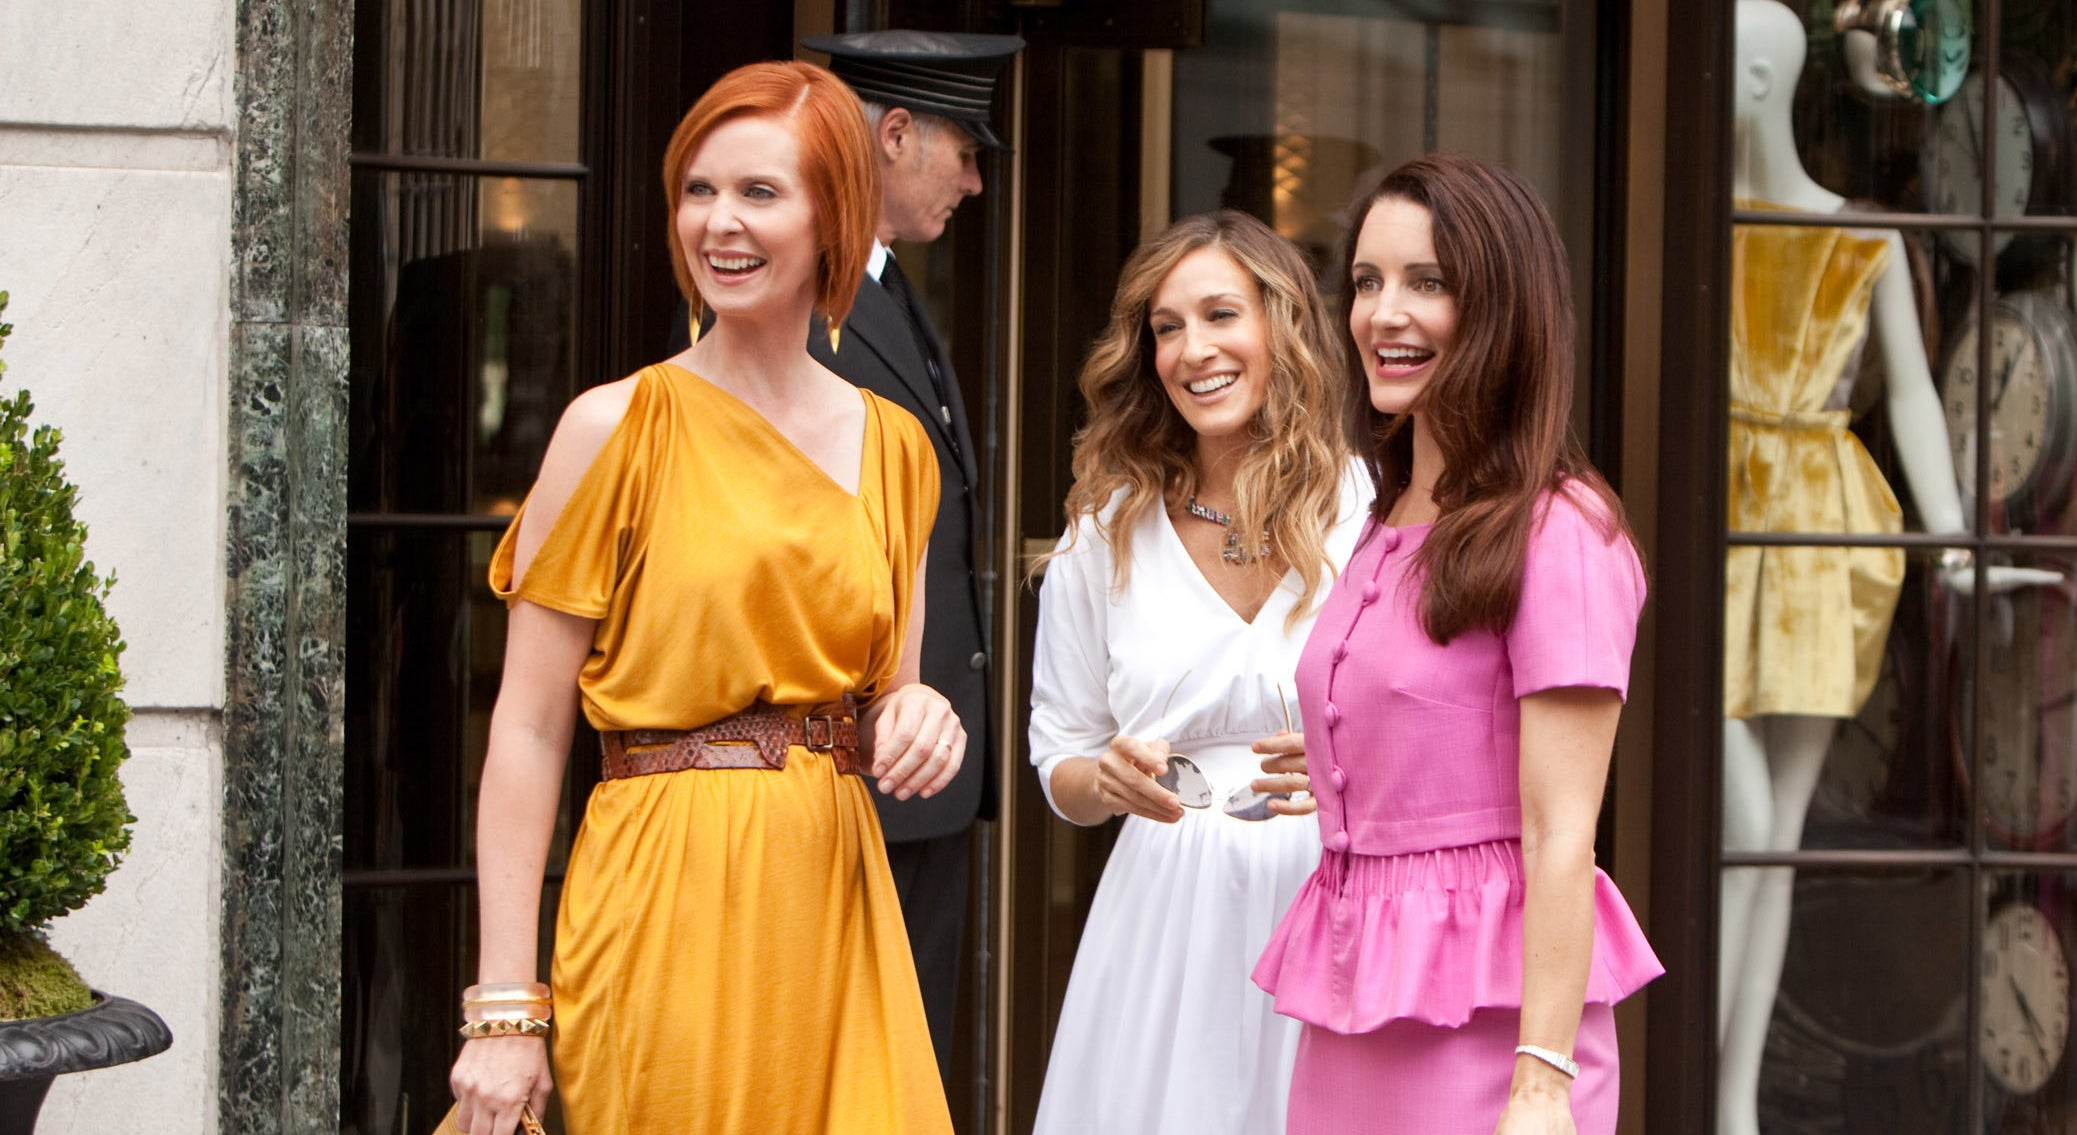 Miranda, Carrie, and Charlotte standing outside of a shop